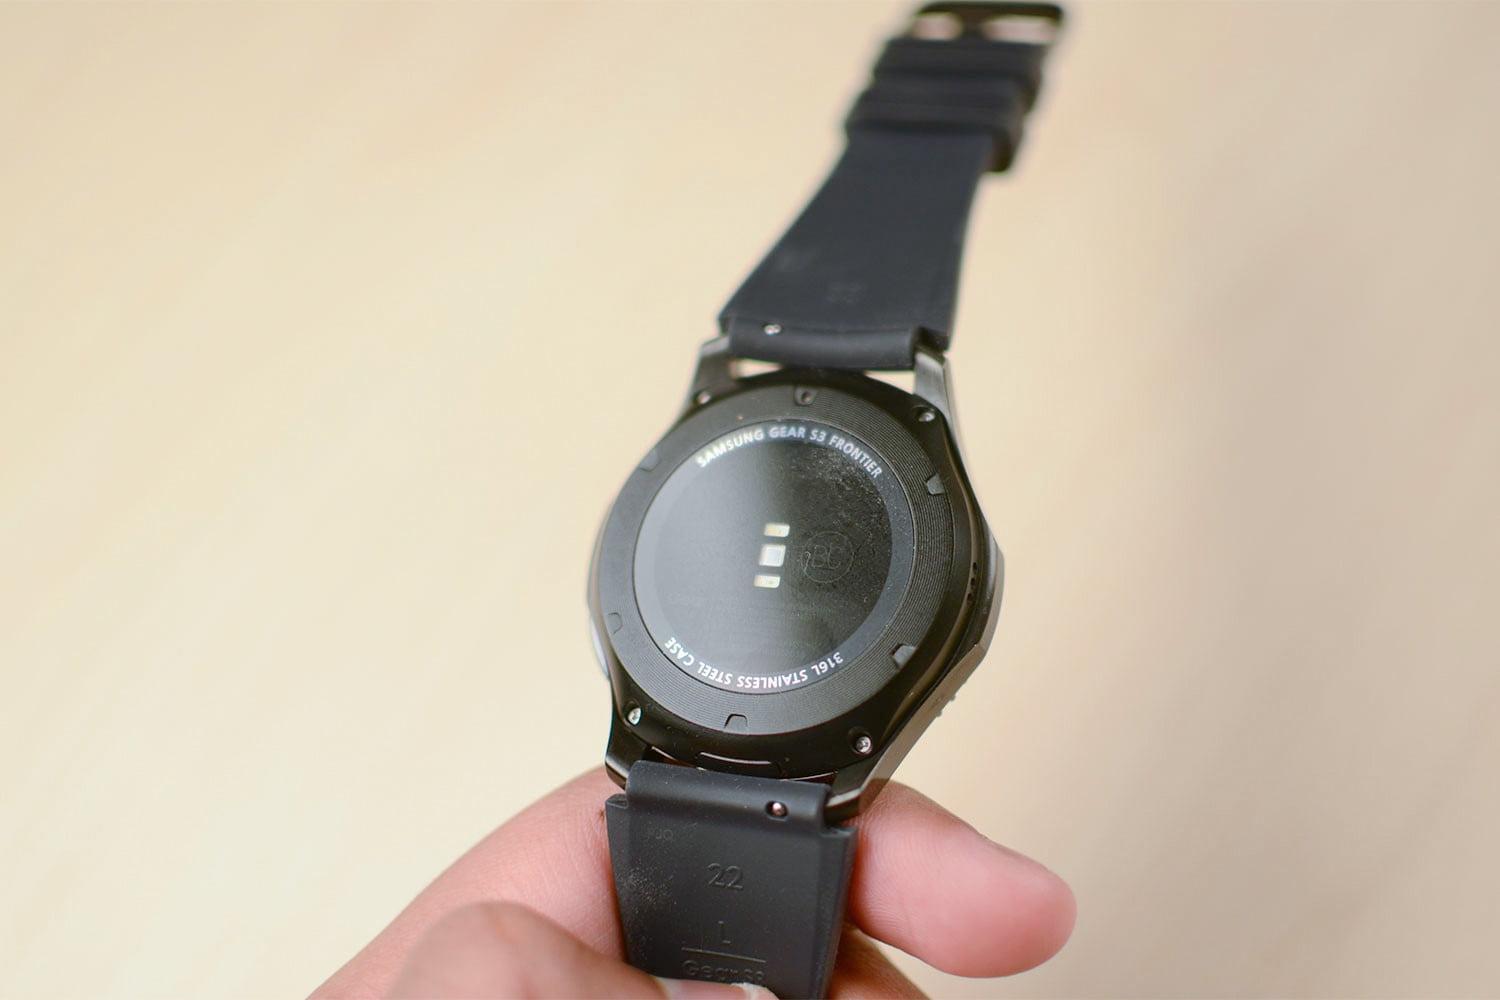 Samsung Gear S3 Review: A Great Watch for Android Owners | Digital ...